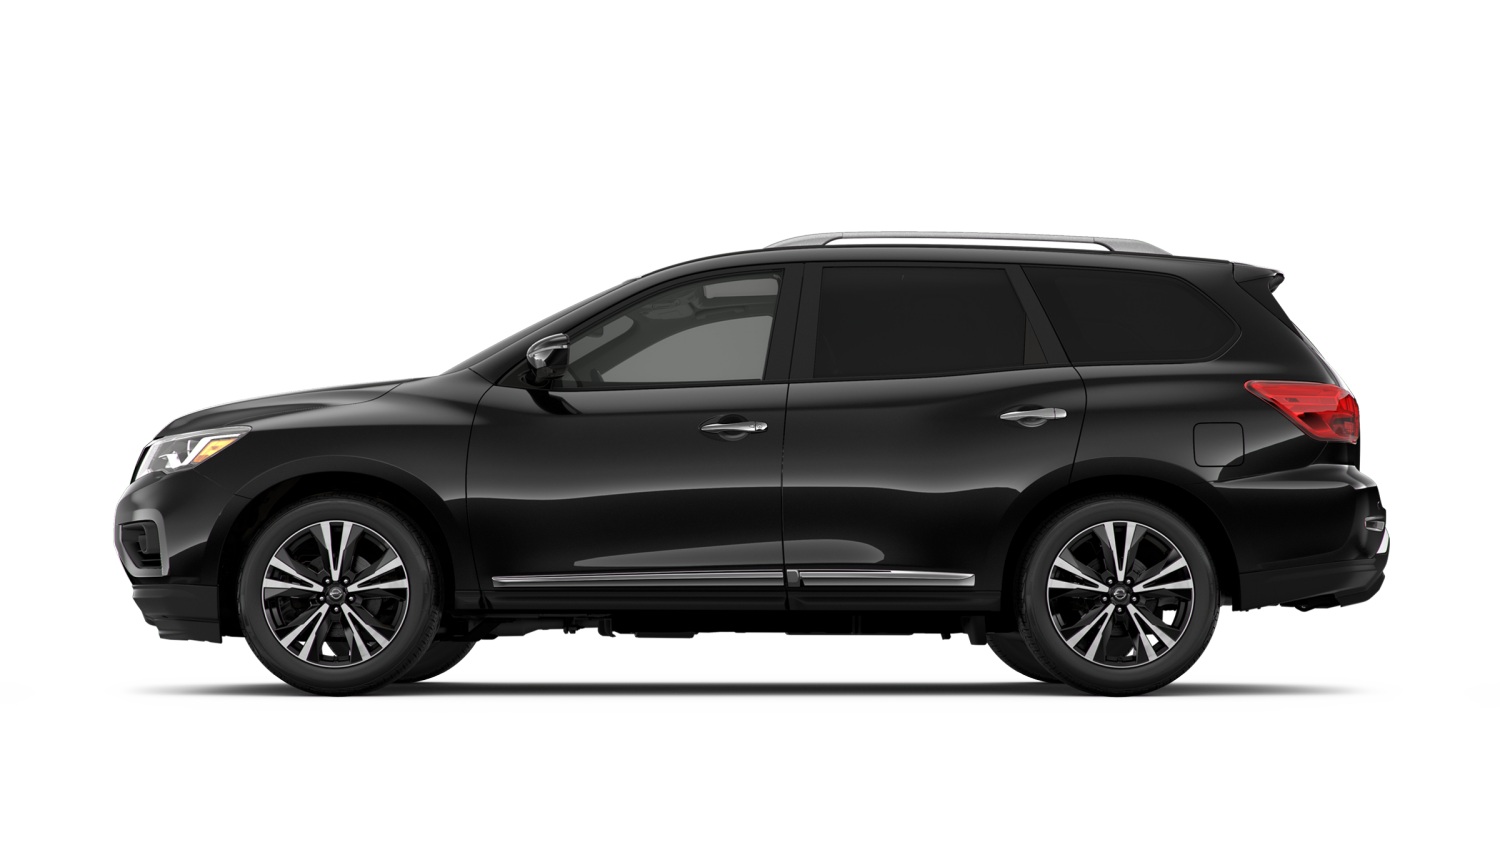 69 All New 2019 Nissan Pathfinder New Review with 2019 Nissan Pathfinder